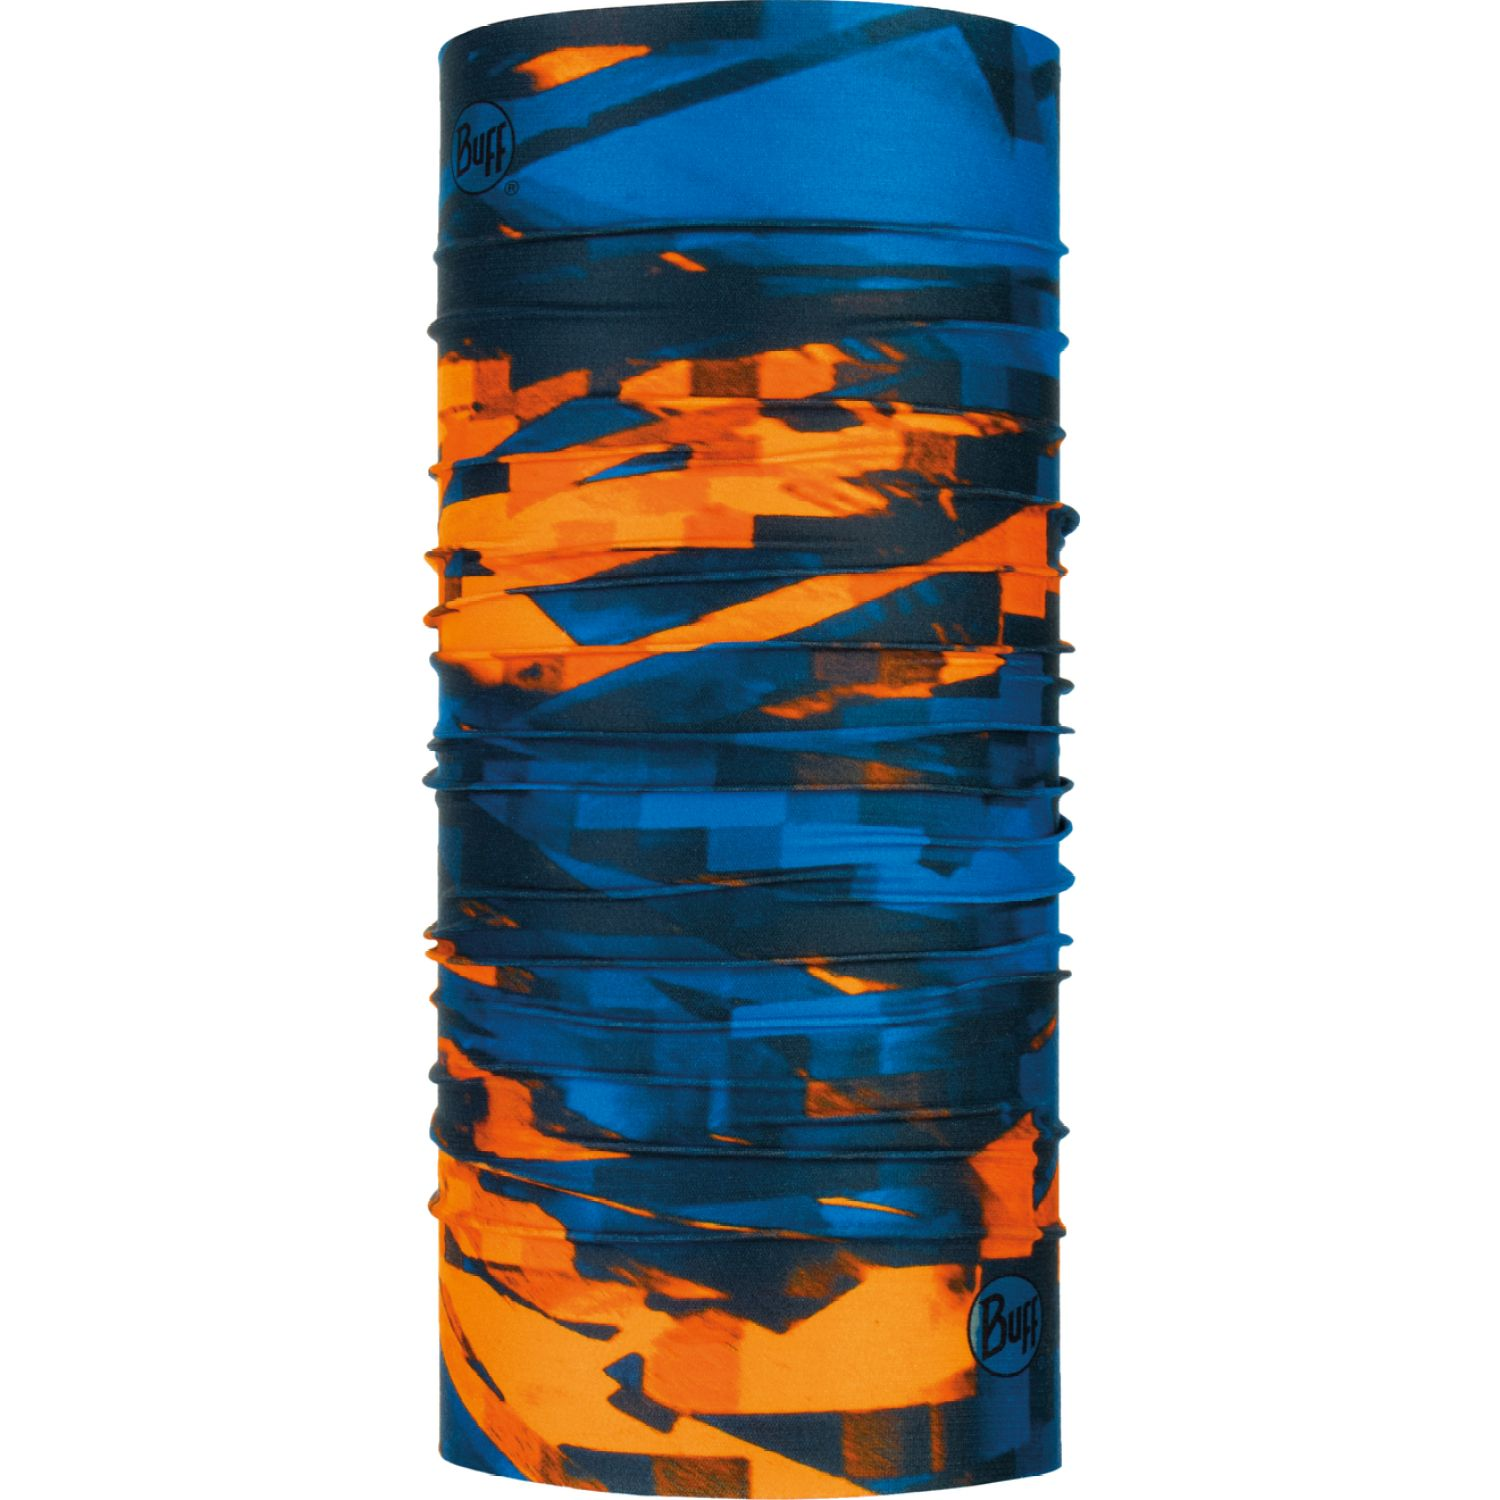 BUFF coolnet uv+ loom multi Azul / naranja Gaiters de Cuello o Calienta Cuellos